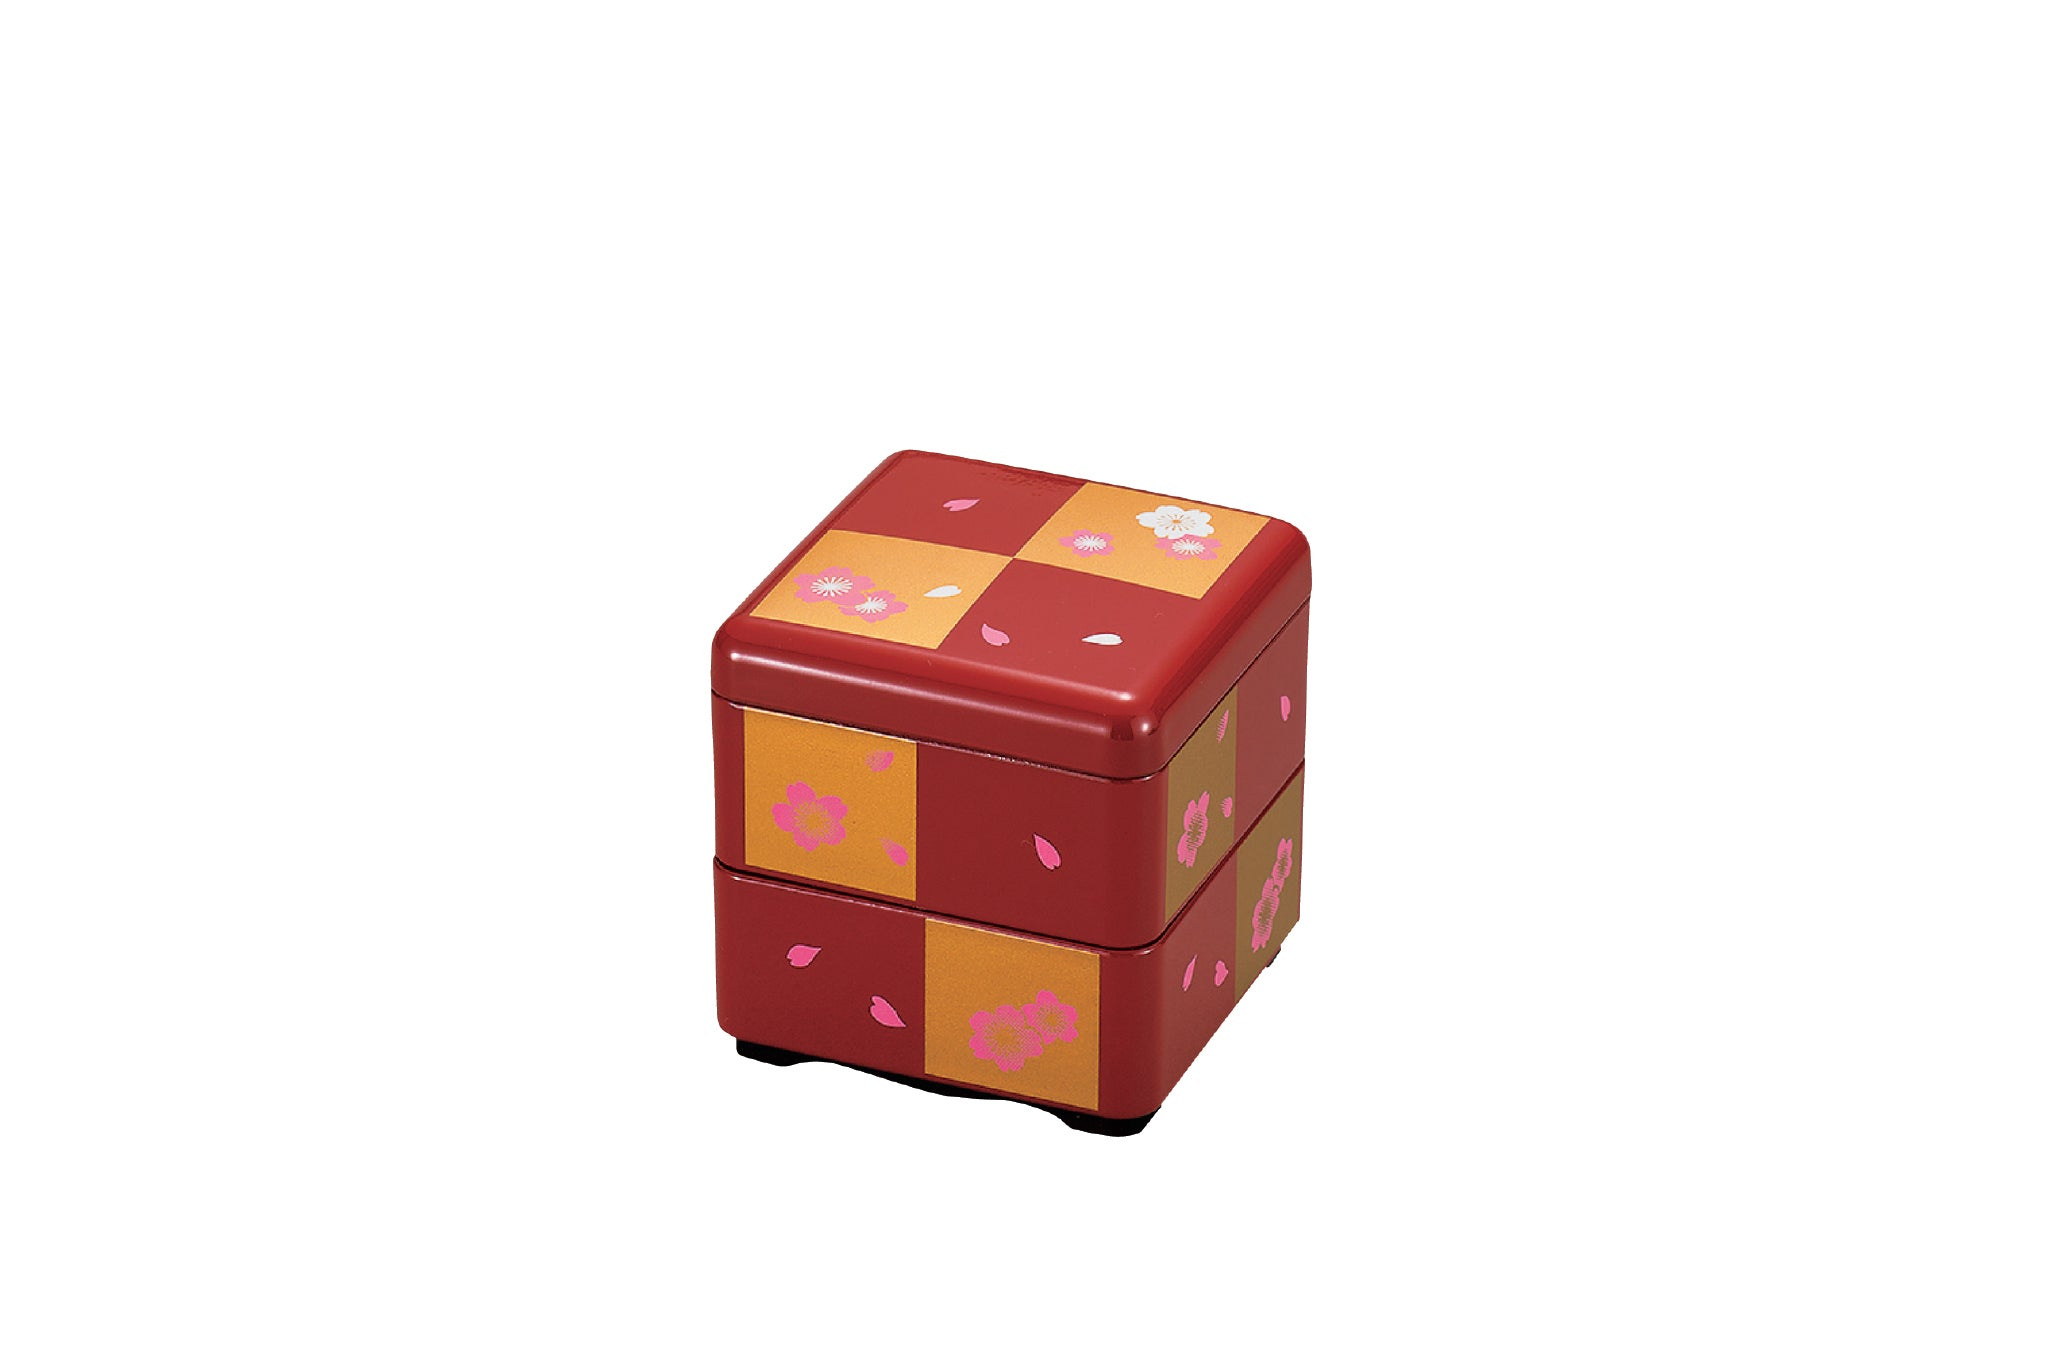 Sakura Square Bento Box Small | Red and Gold by Hakoya - Bento&co Japanese Bento Lunch Boxes and Kitchenware Specialists